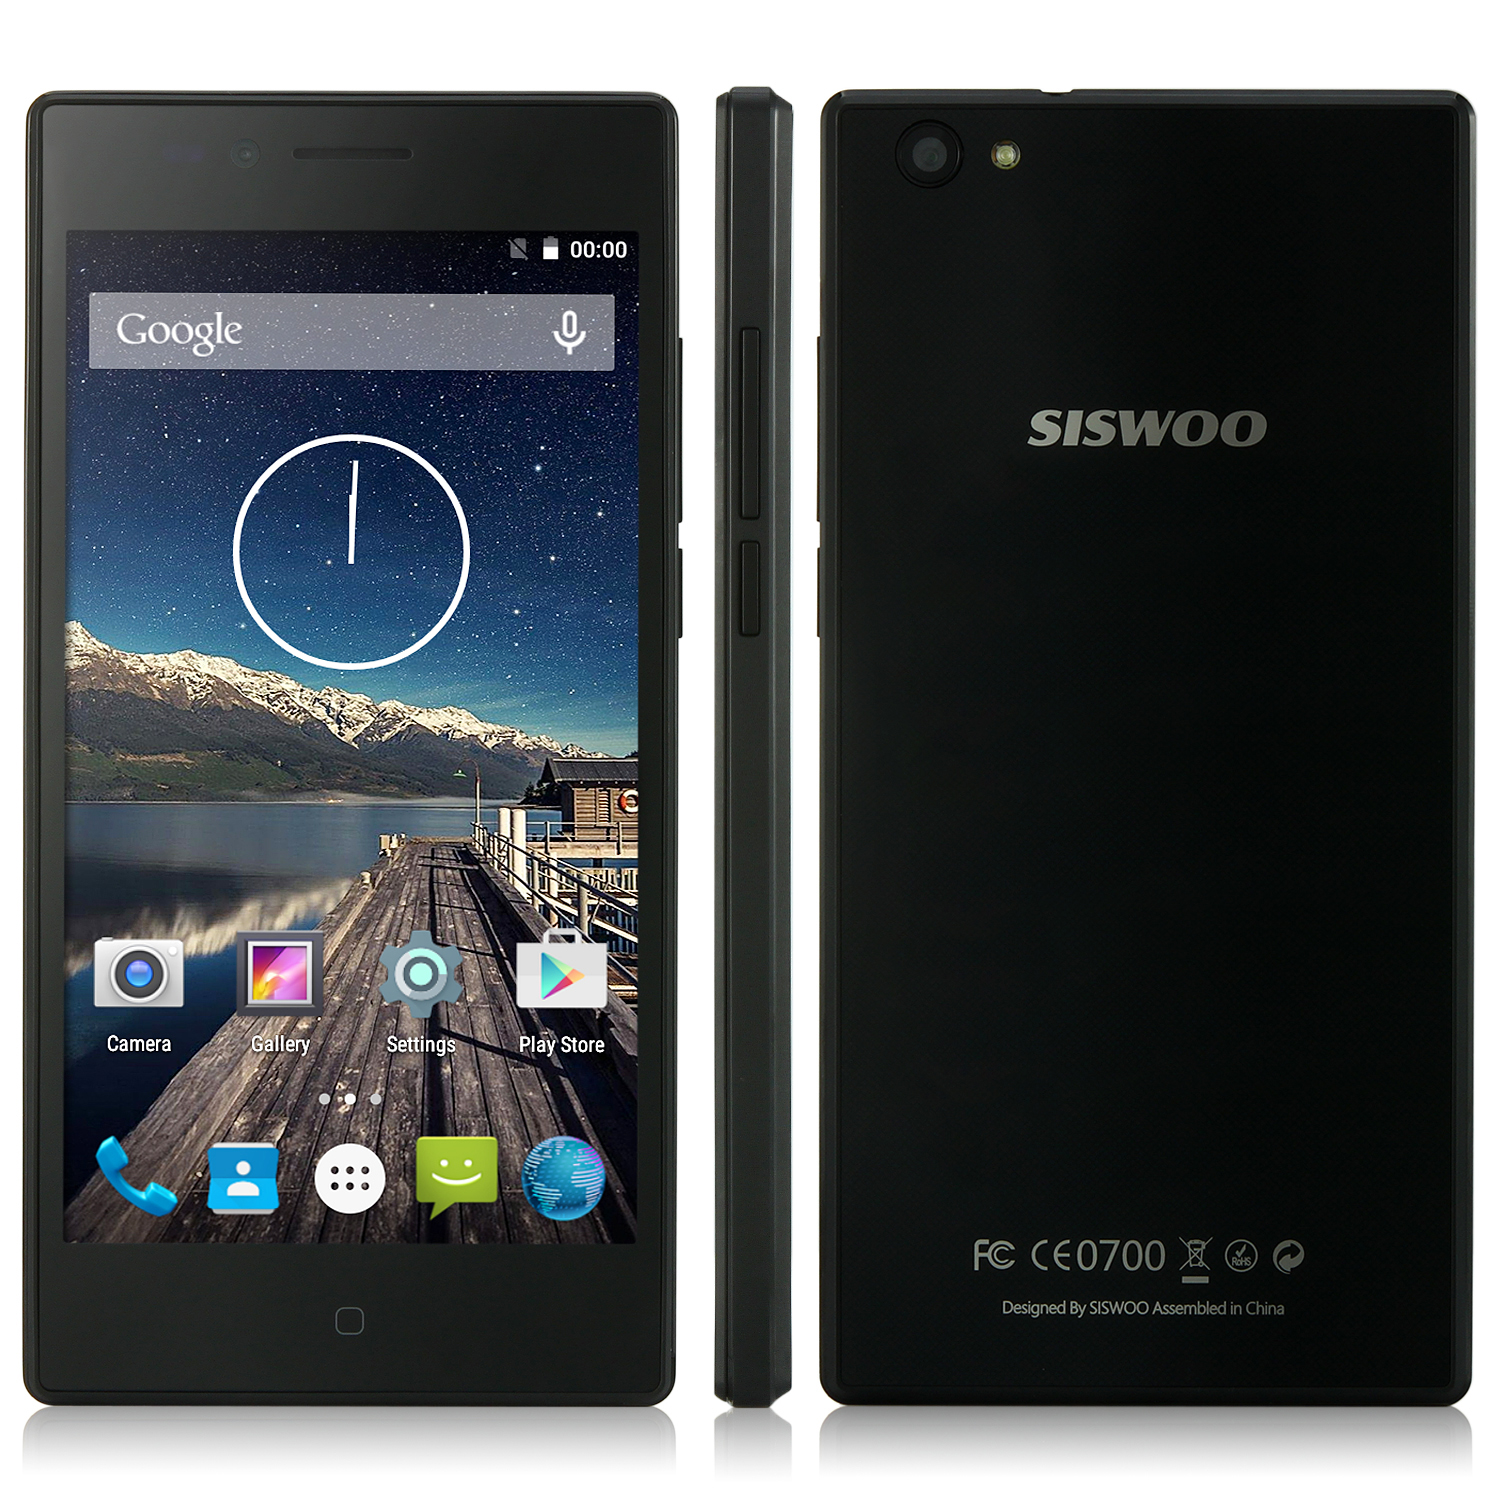 SISWOO Chocolate A4+ Smartphone 4G 64bit Android 5.1 4.5 Inch IPS Screen 1GB 8GB- Black